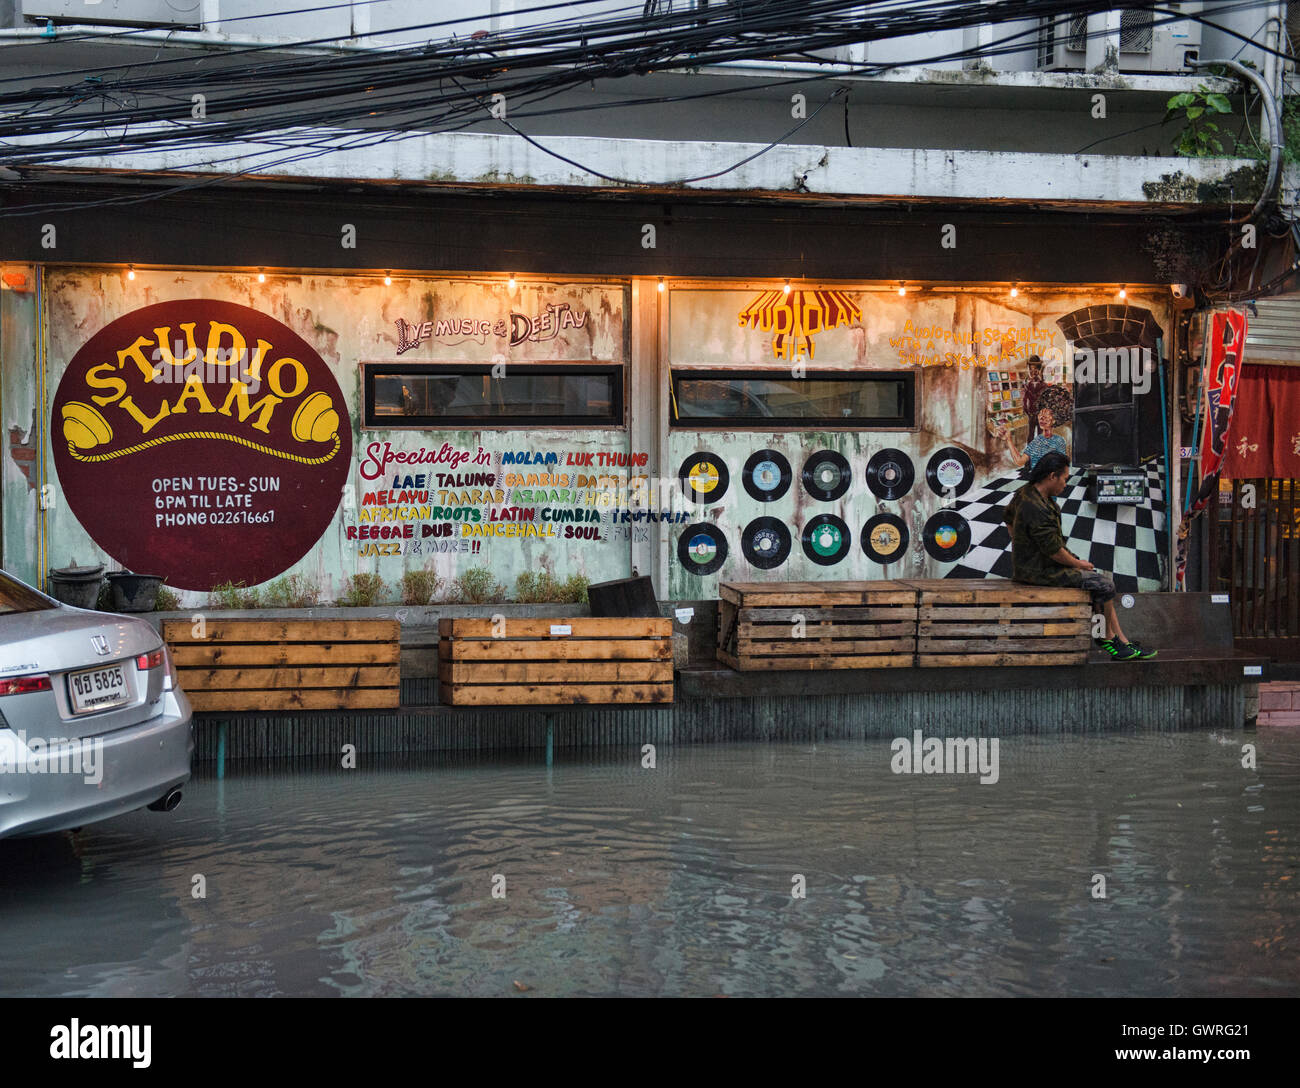 Studio Lam ya dong (white spirits) bar in Bangkok, Thailand - Stock Image